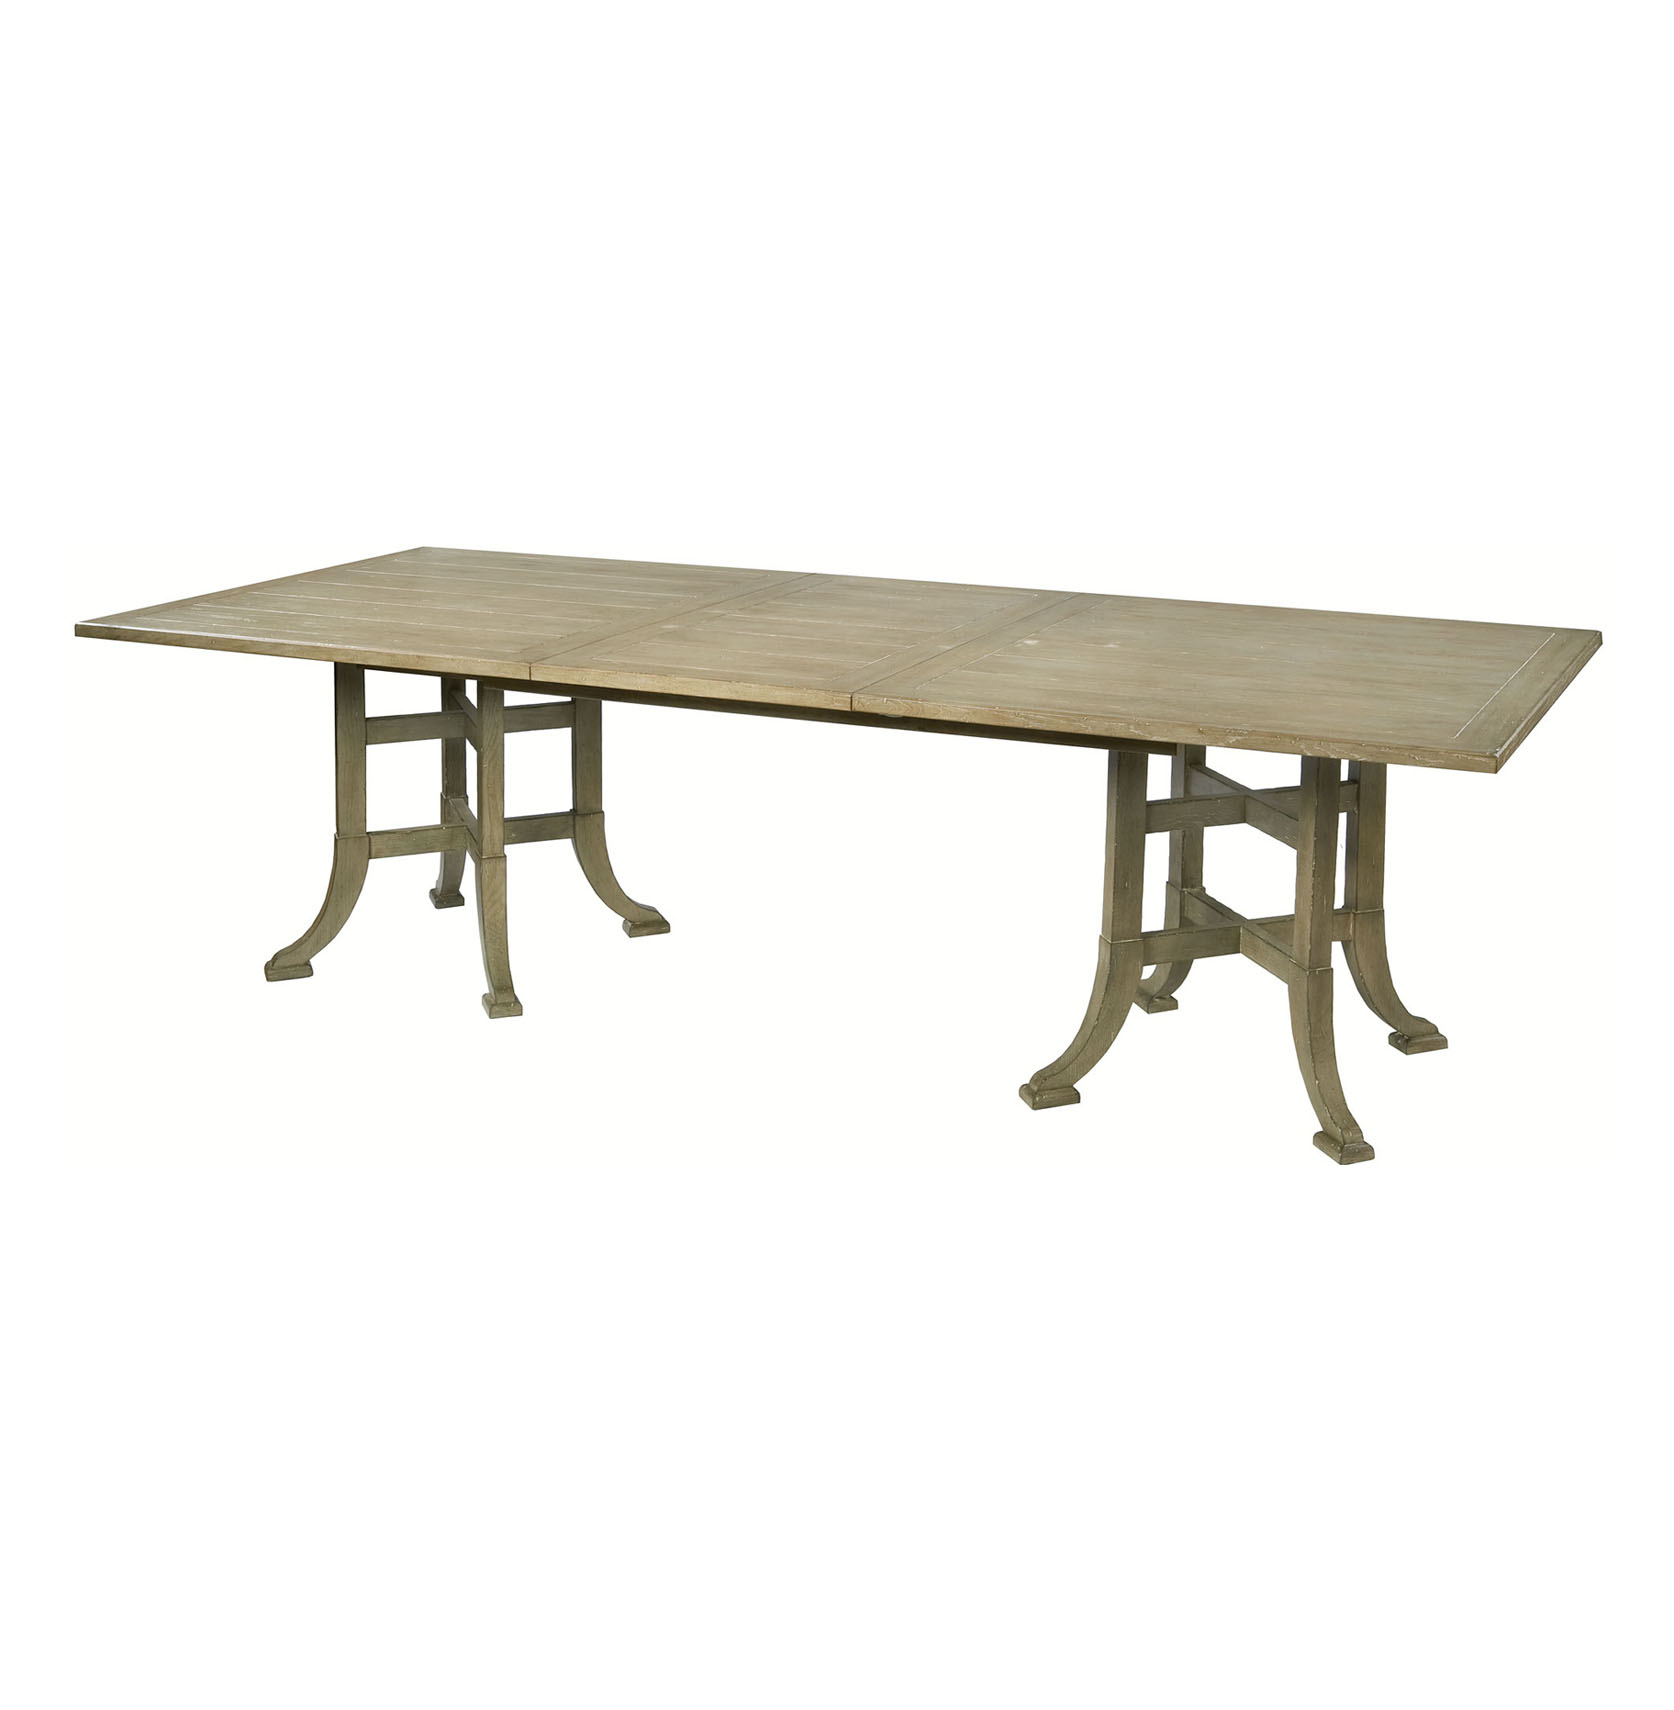 Garrett english farmhouse double pedestal leaf rectangle for Pedestal dining table with leaf